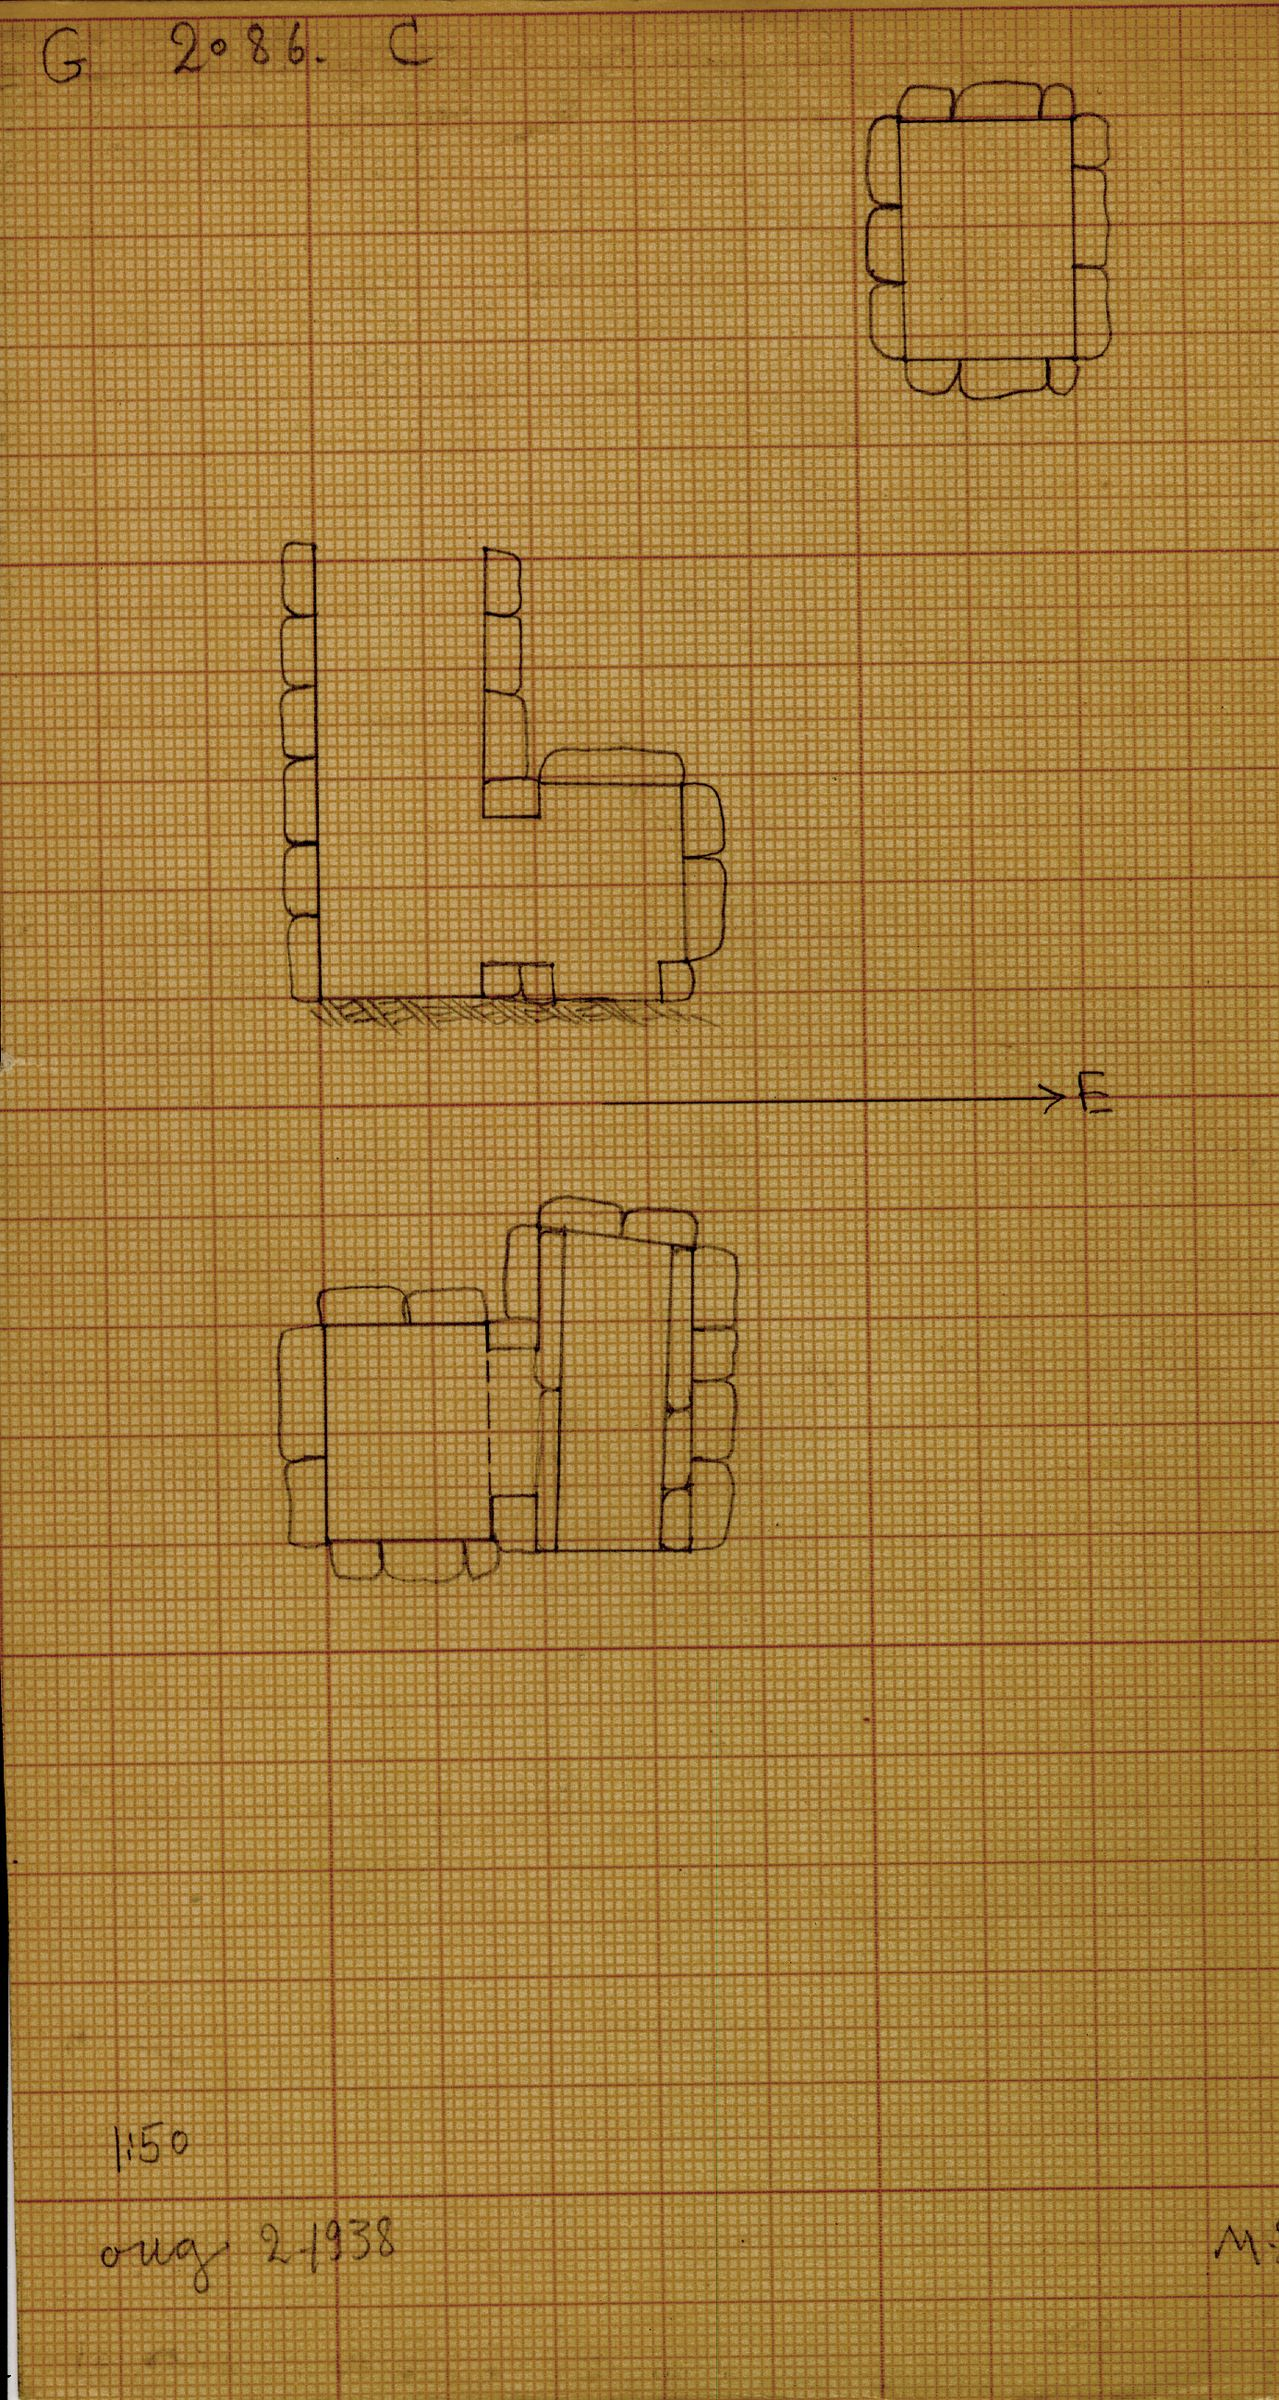 Maps and plans: G 2086, Shaft C